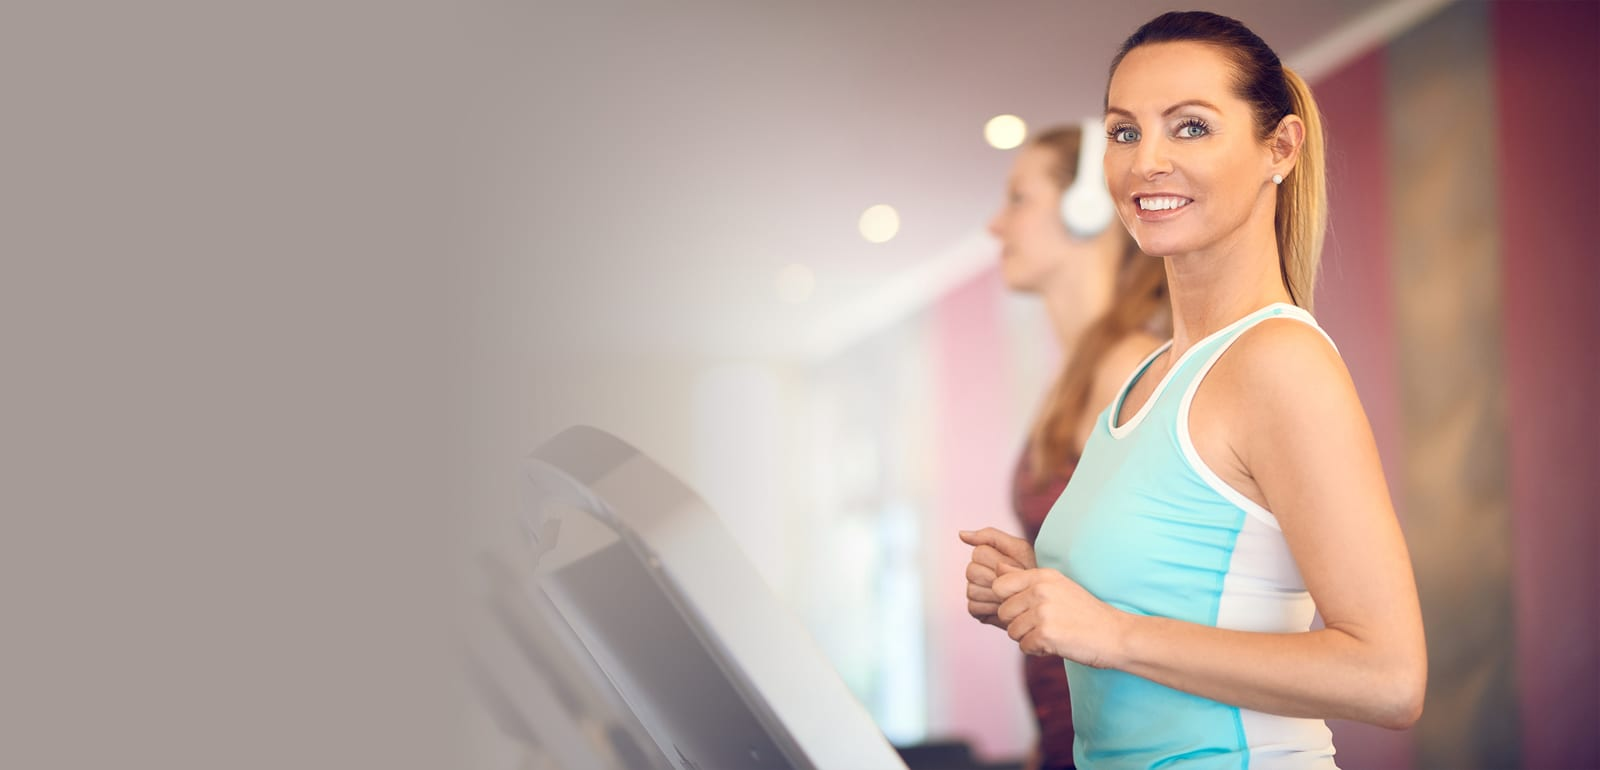 woman working out on a treadmill smiling at the camera